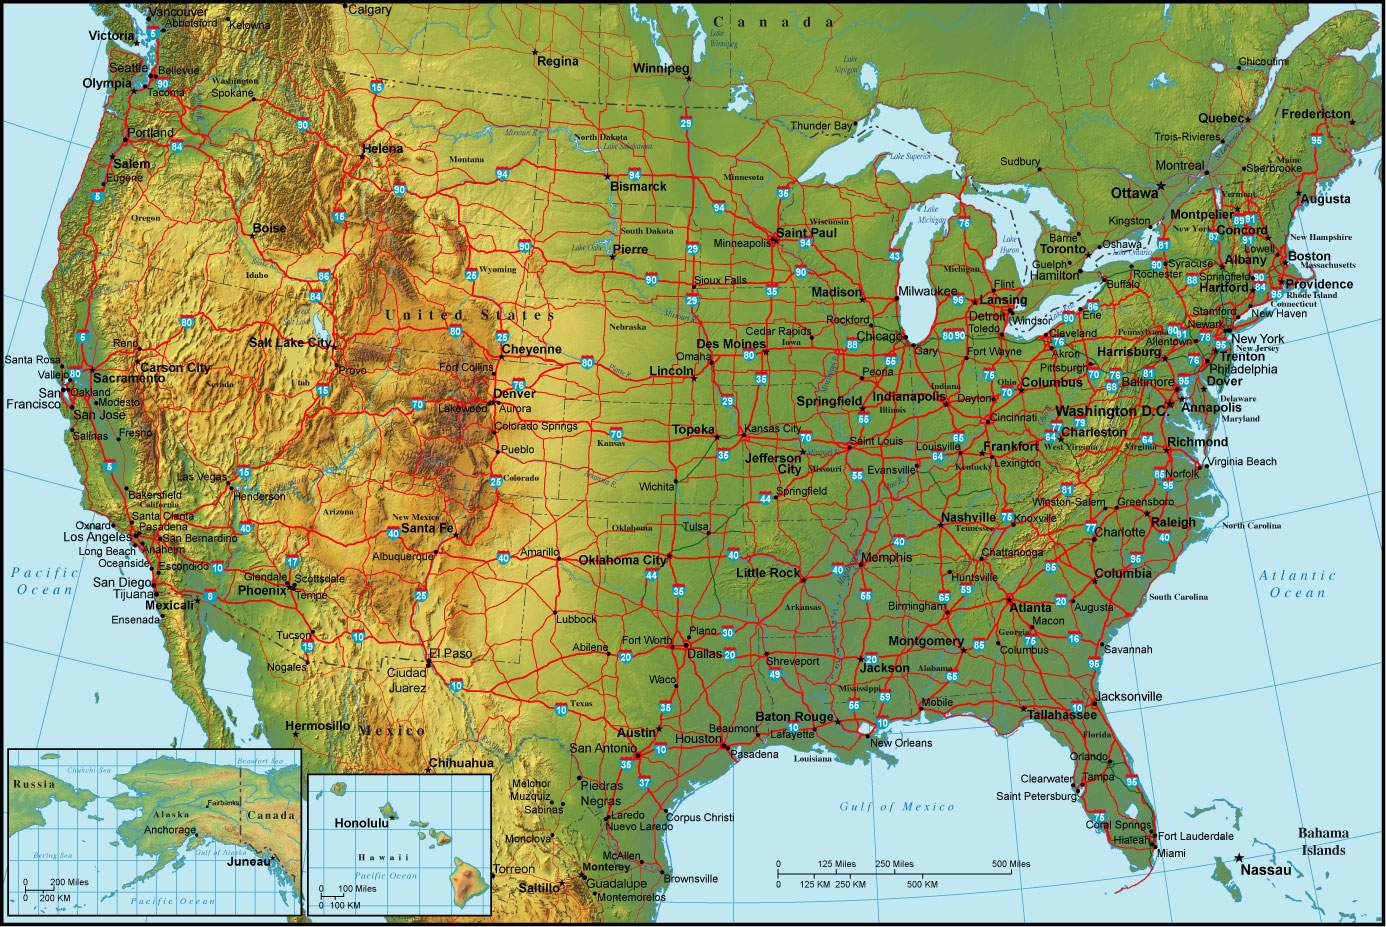 Map Usa Mountains Map Images - Images for map of usa